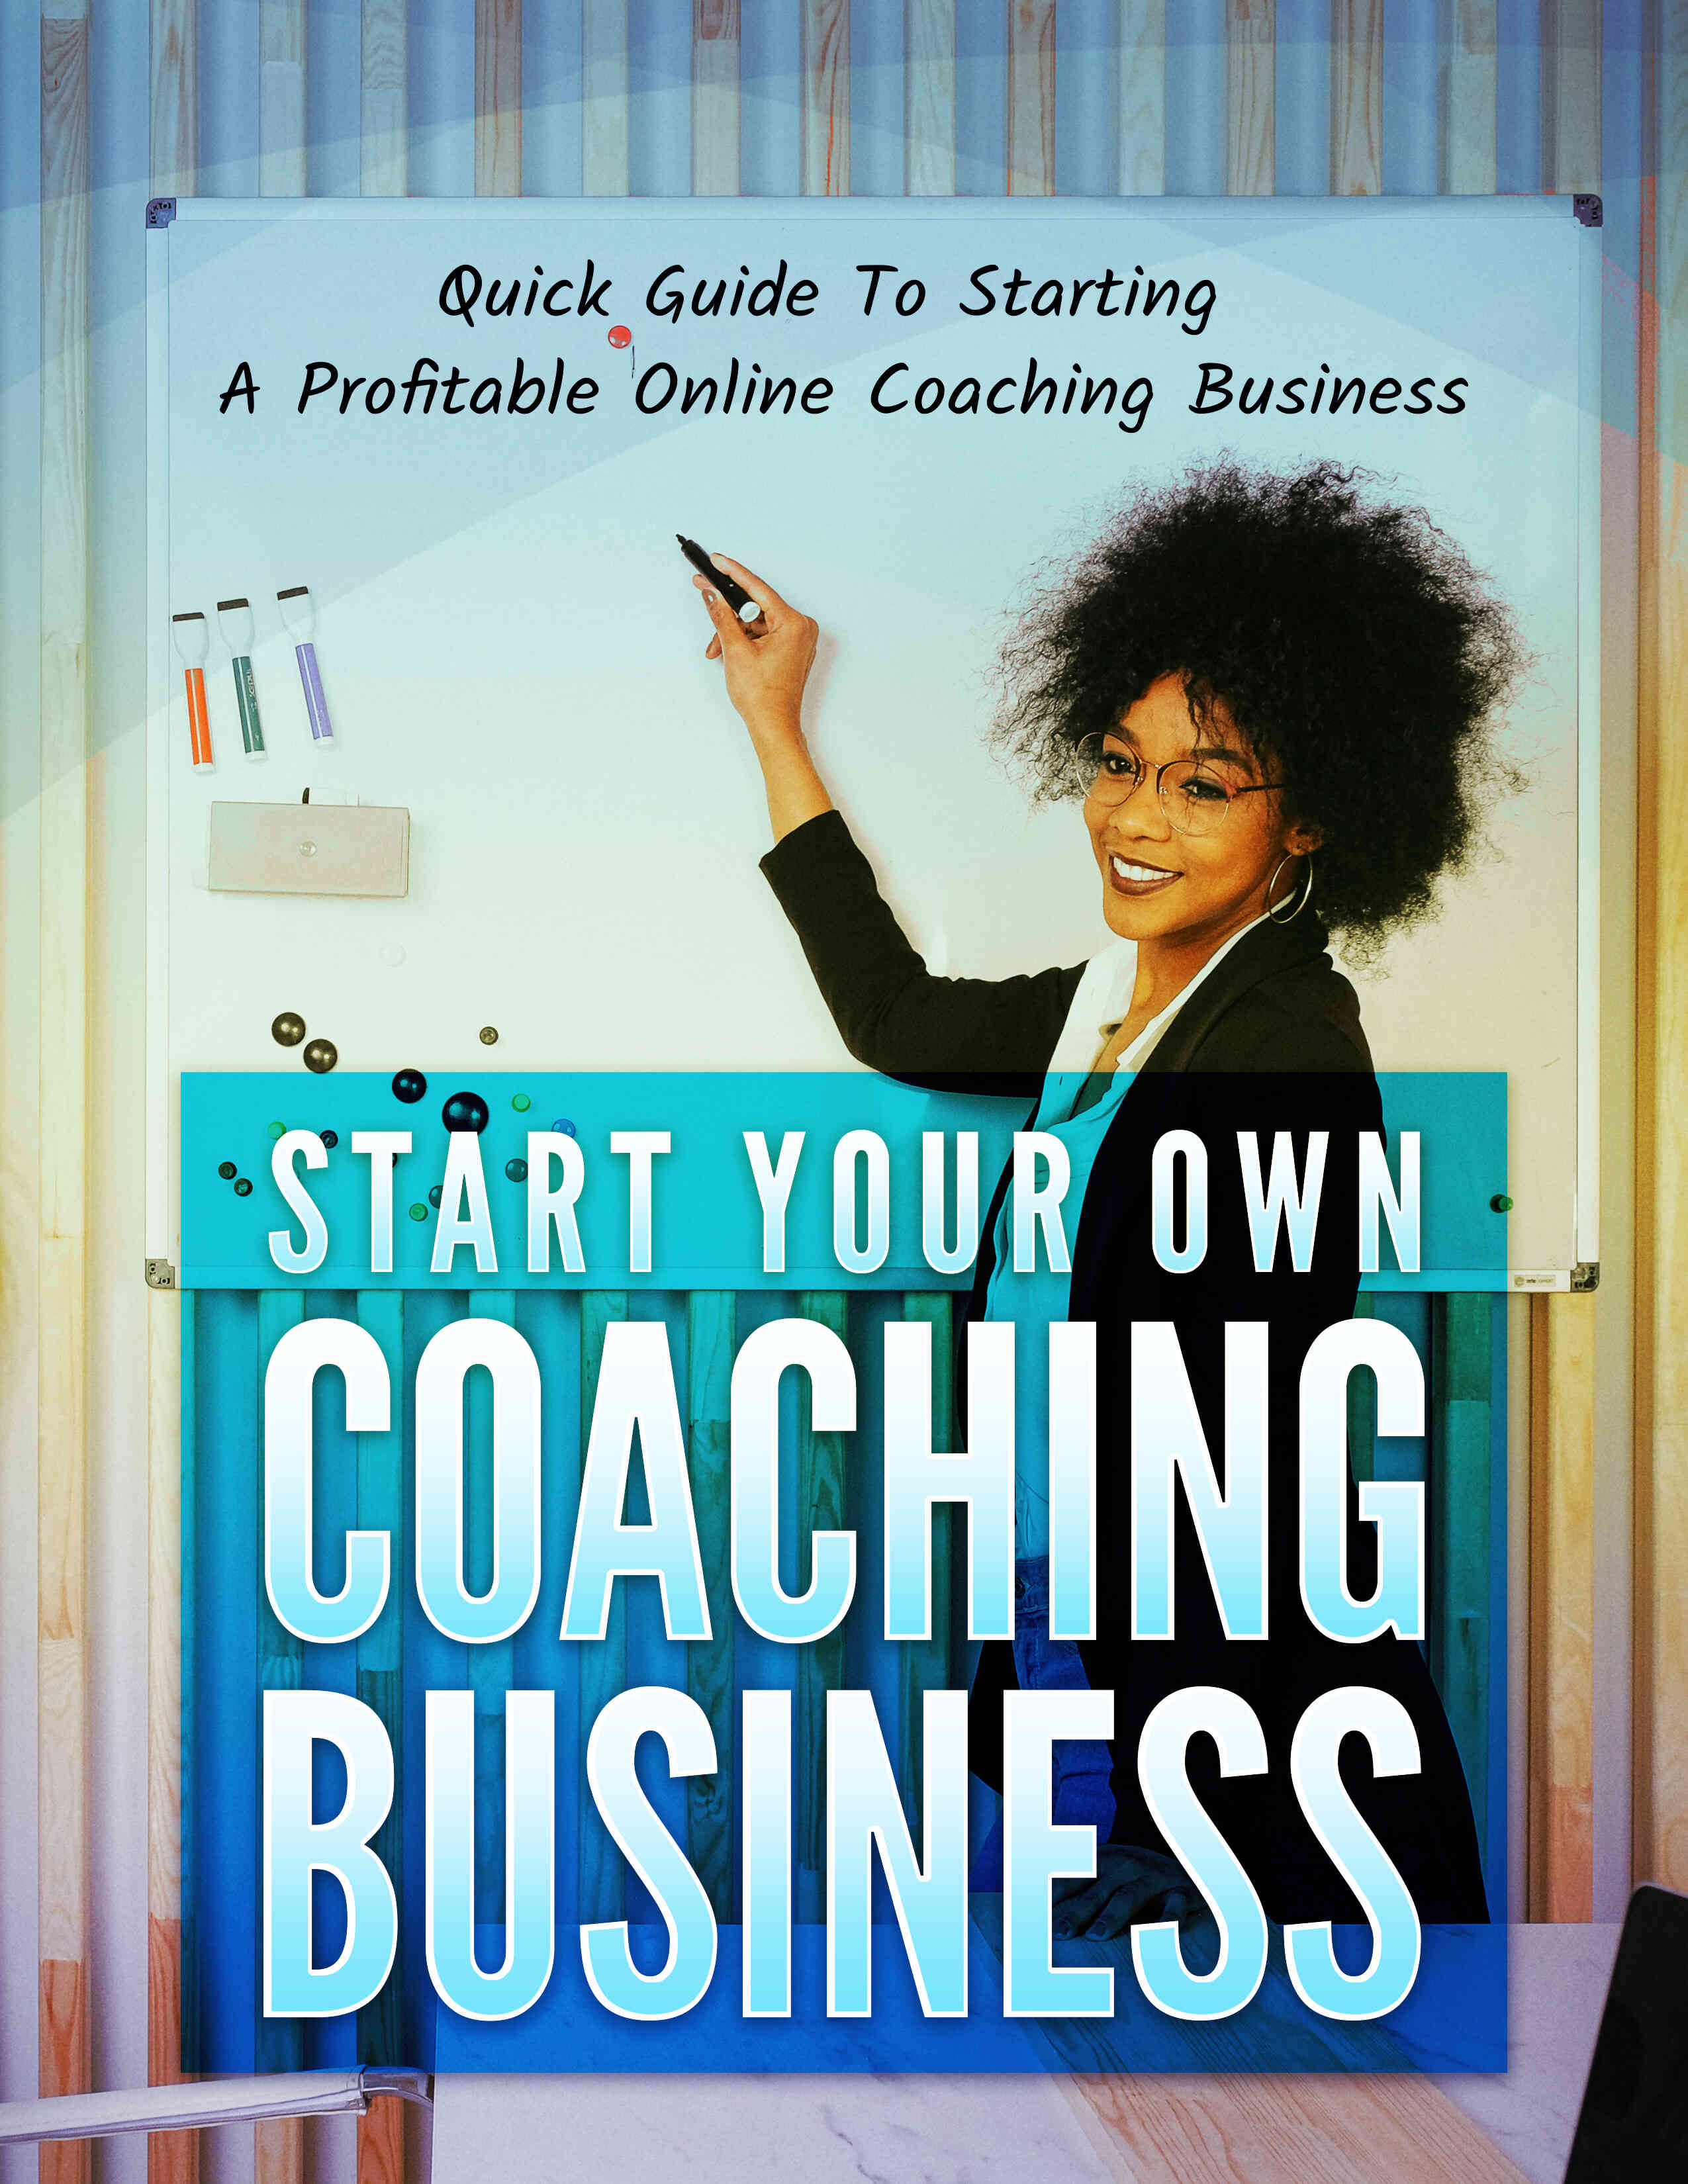 Start Your Own Coaching Business (Quick Guide To Starting A Profitable Online Coaching Business) Ebook's Ebook Image